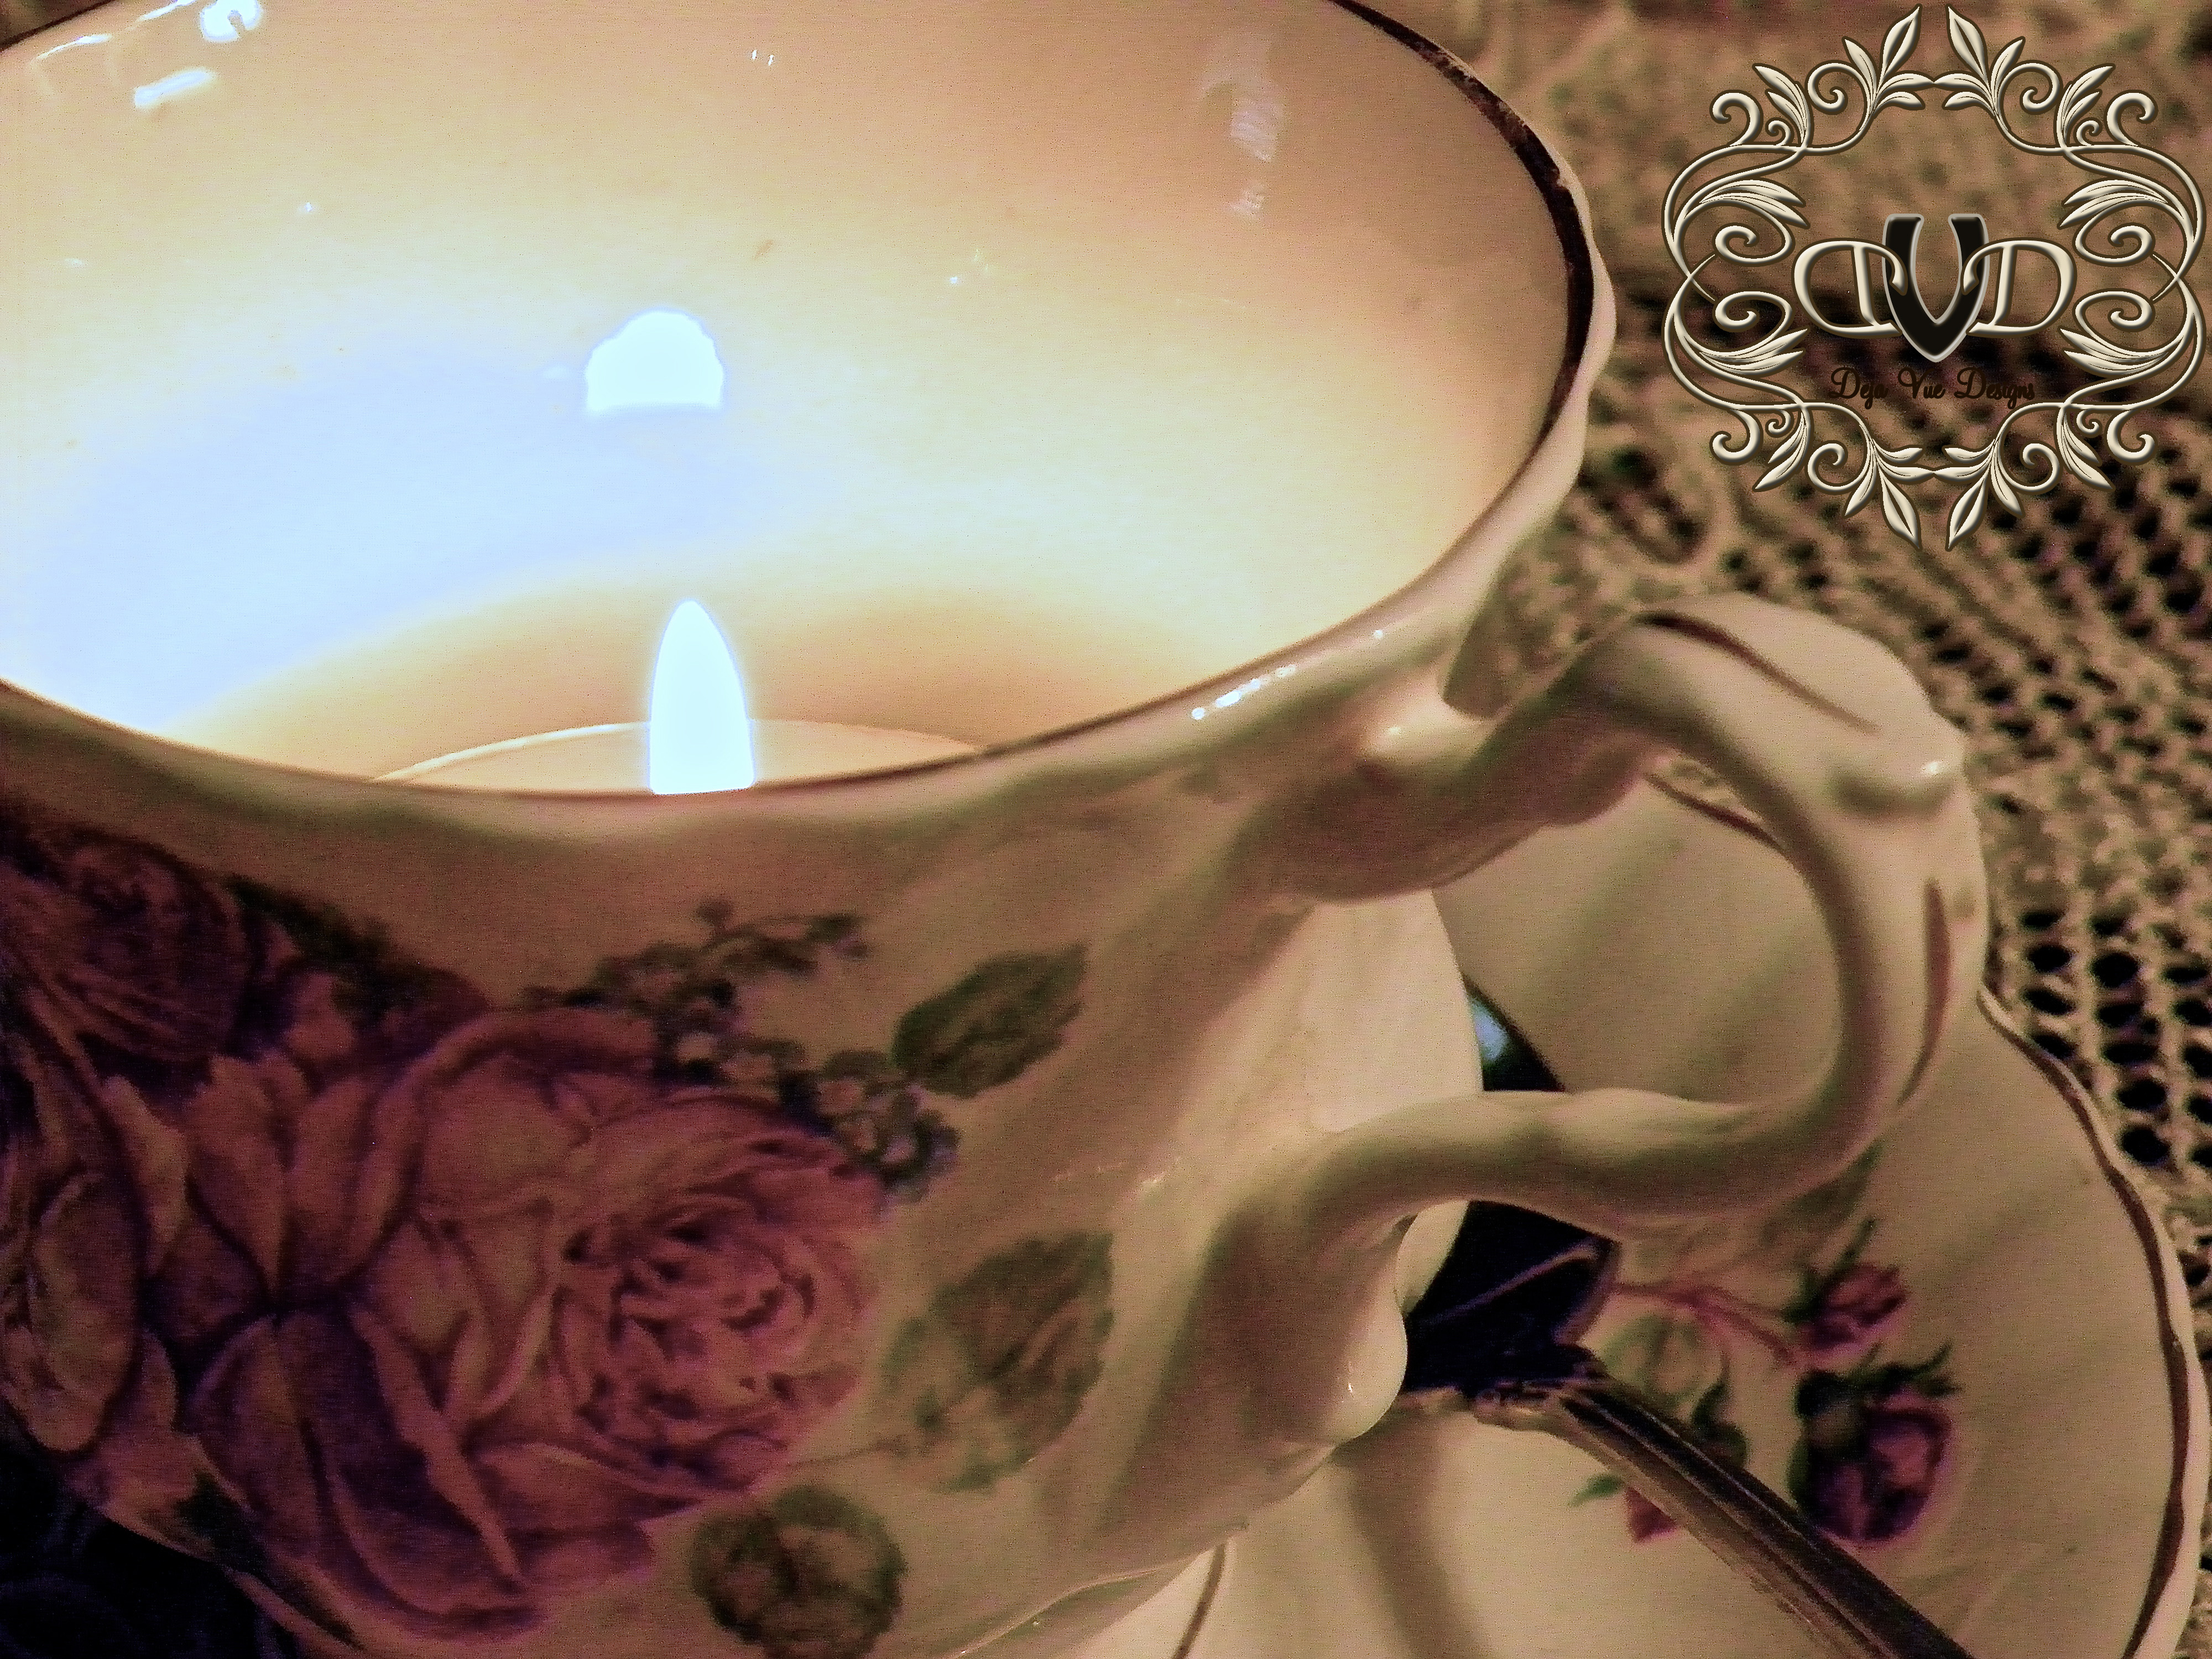 Antique tea cup with tea light New Year's Day Traditions